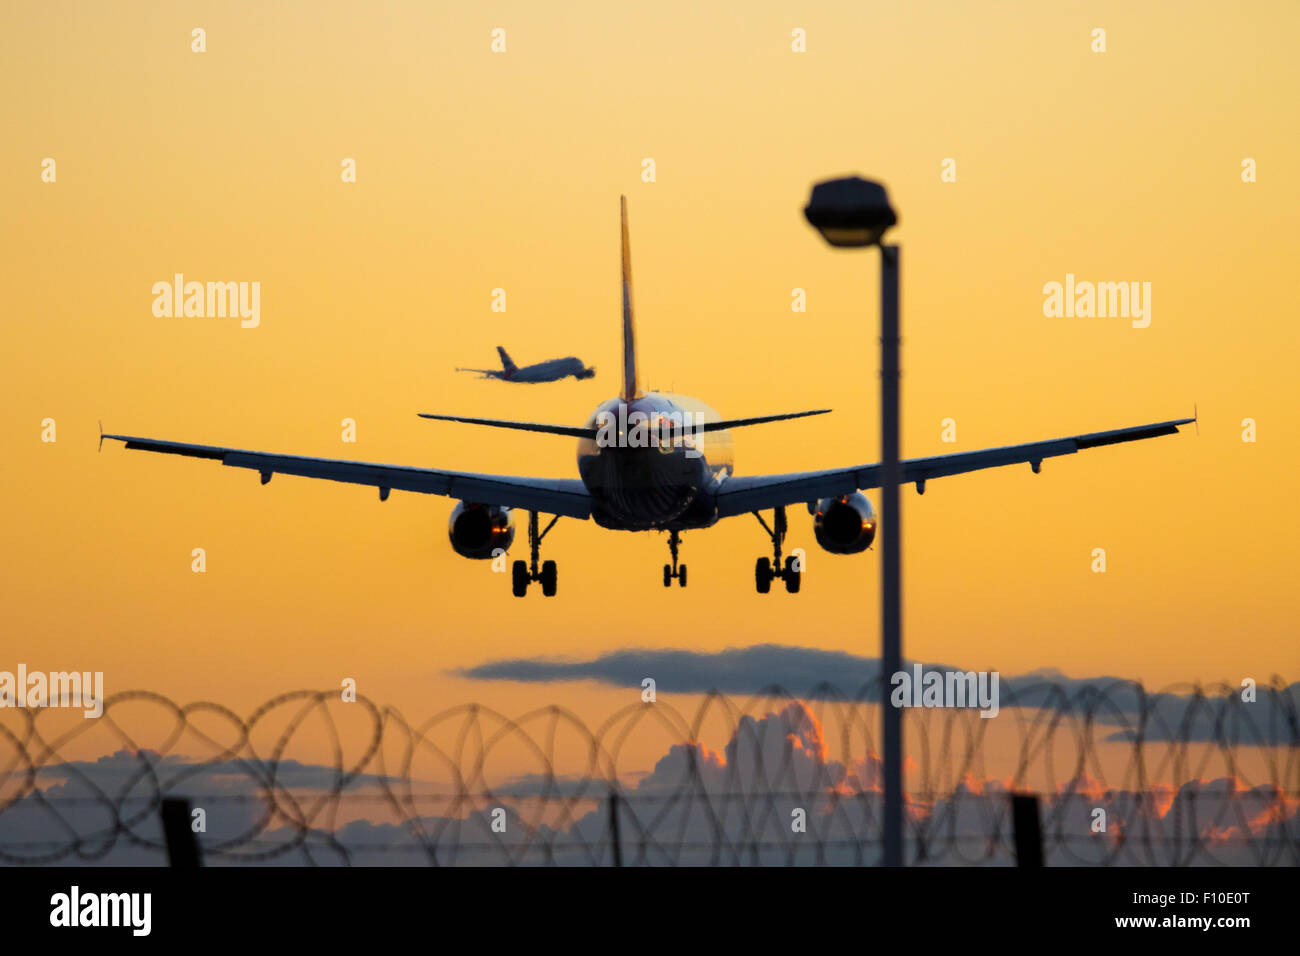 A British Airways Airbus A319 lands on Heathrow Airport's runway 27R as in the distance a British Airways A380 - Stock Image